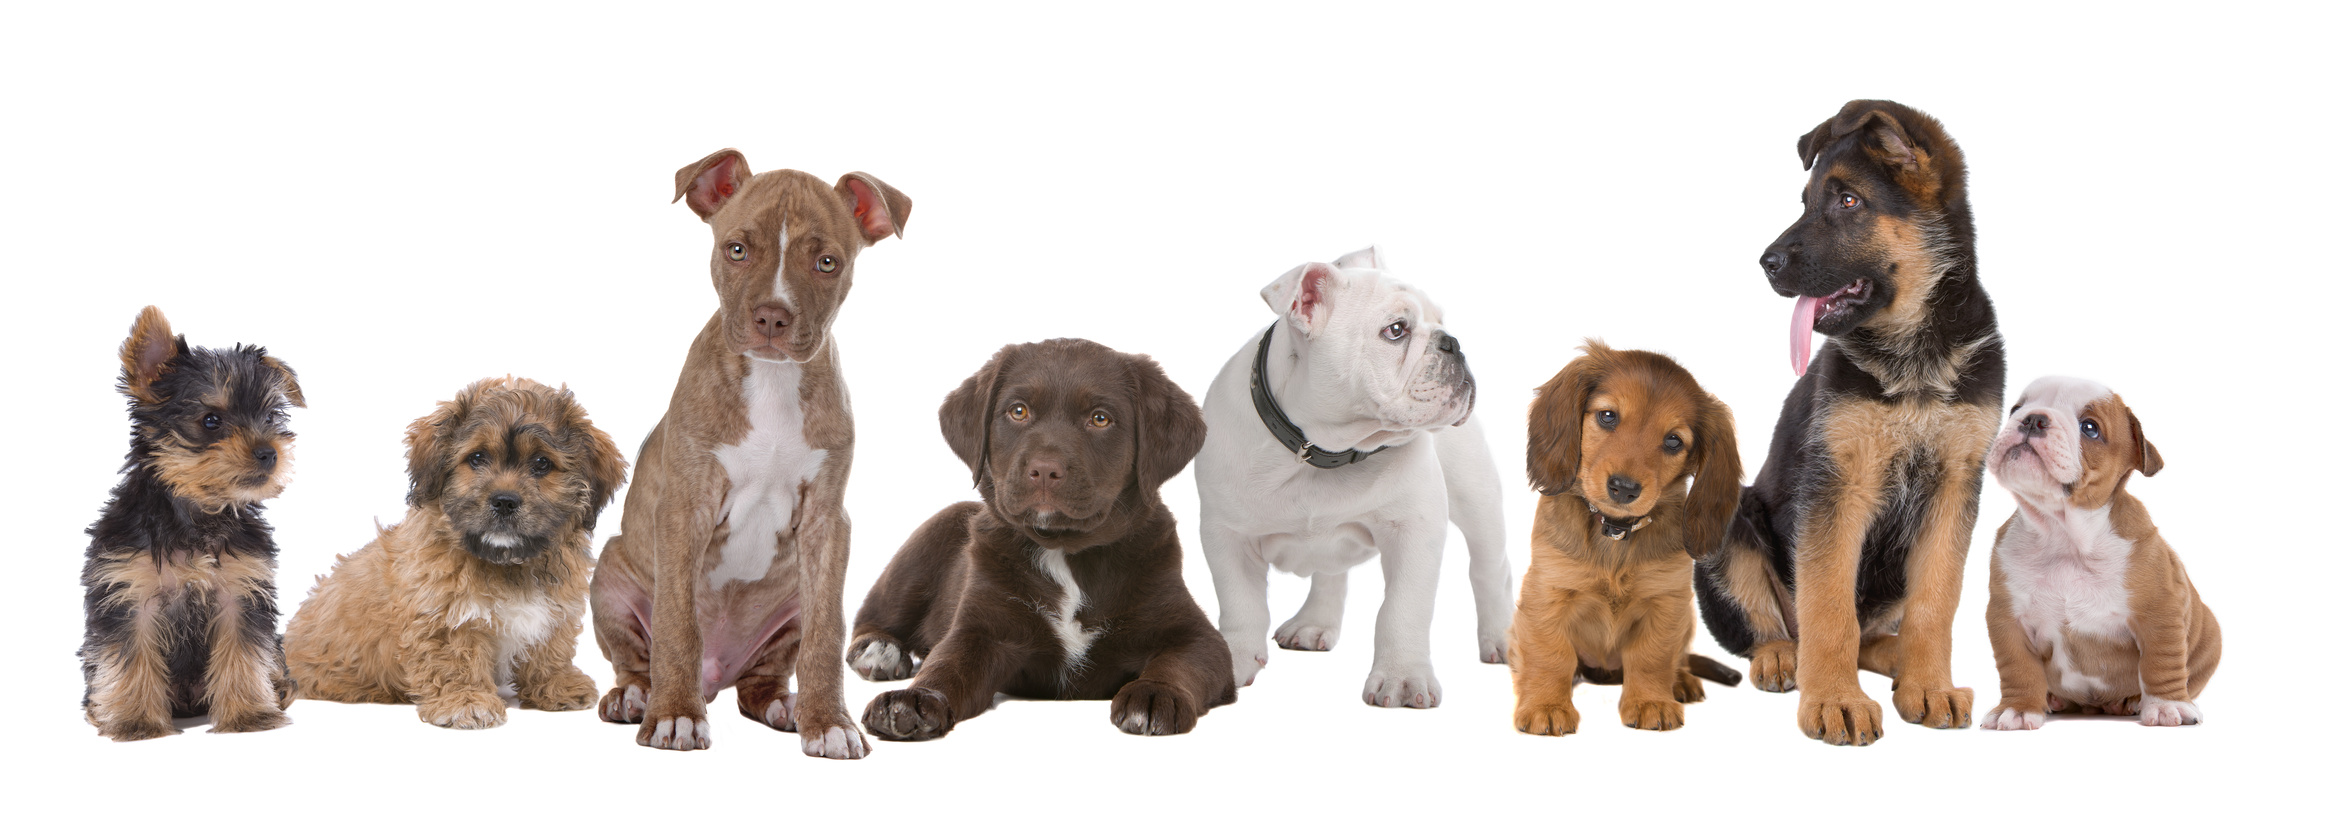 large group of puppies on a white background.from left to right, Yorkshire terrier,mixed breed boomer, pitbull terrier,chocolate labrador,French bulldog, dachshund,German shepherd and an English bulldog